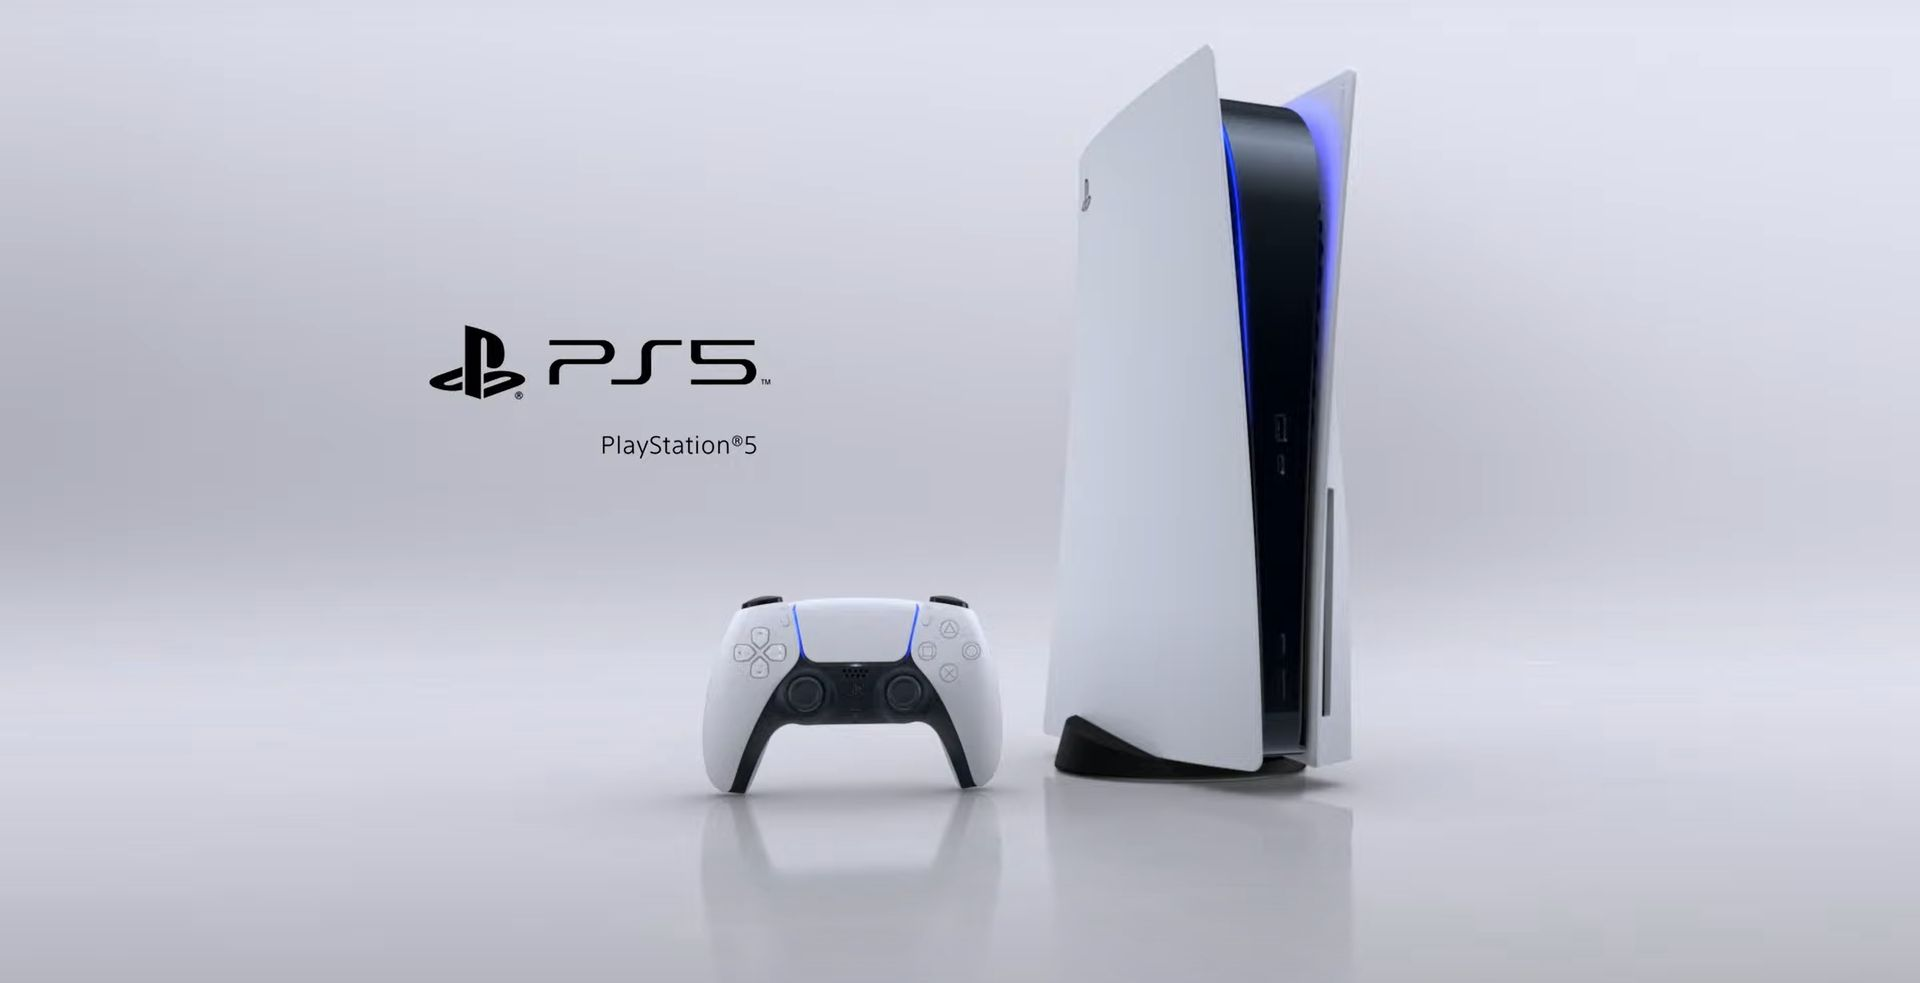 Here's the Playstation 5! And in two versions!